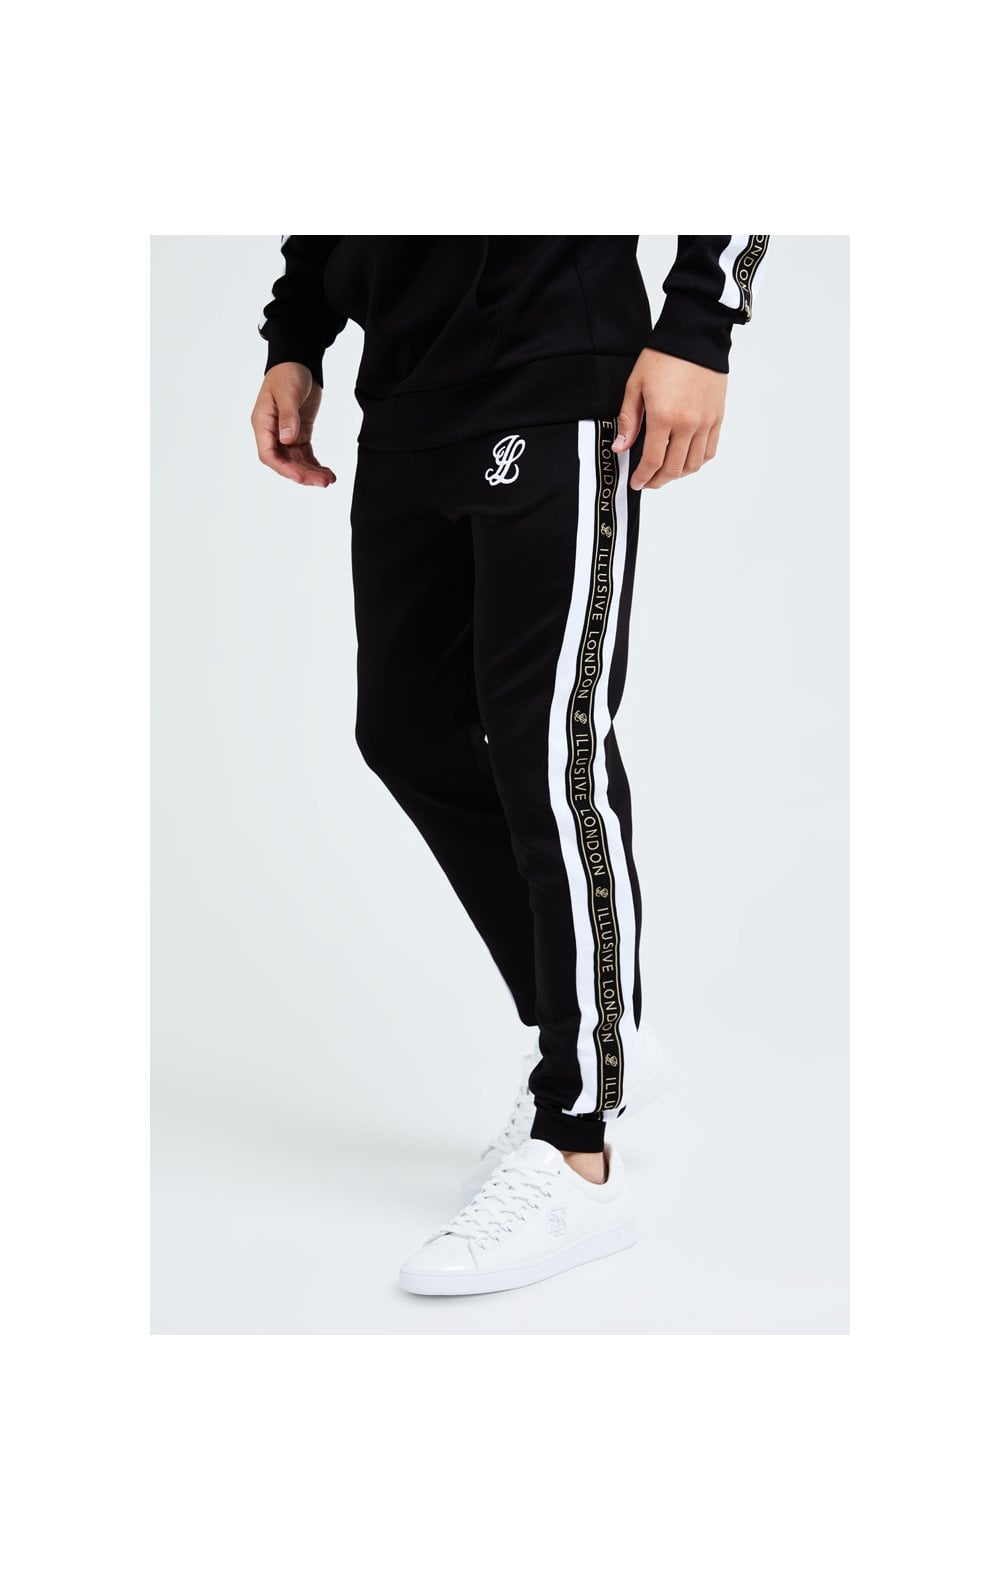 Illusive London Diverge Jogger - Black Gold & White